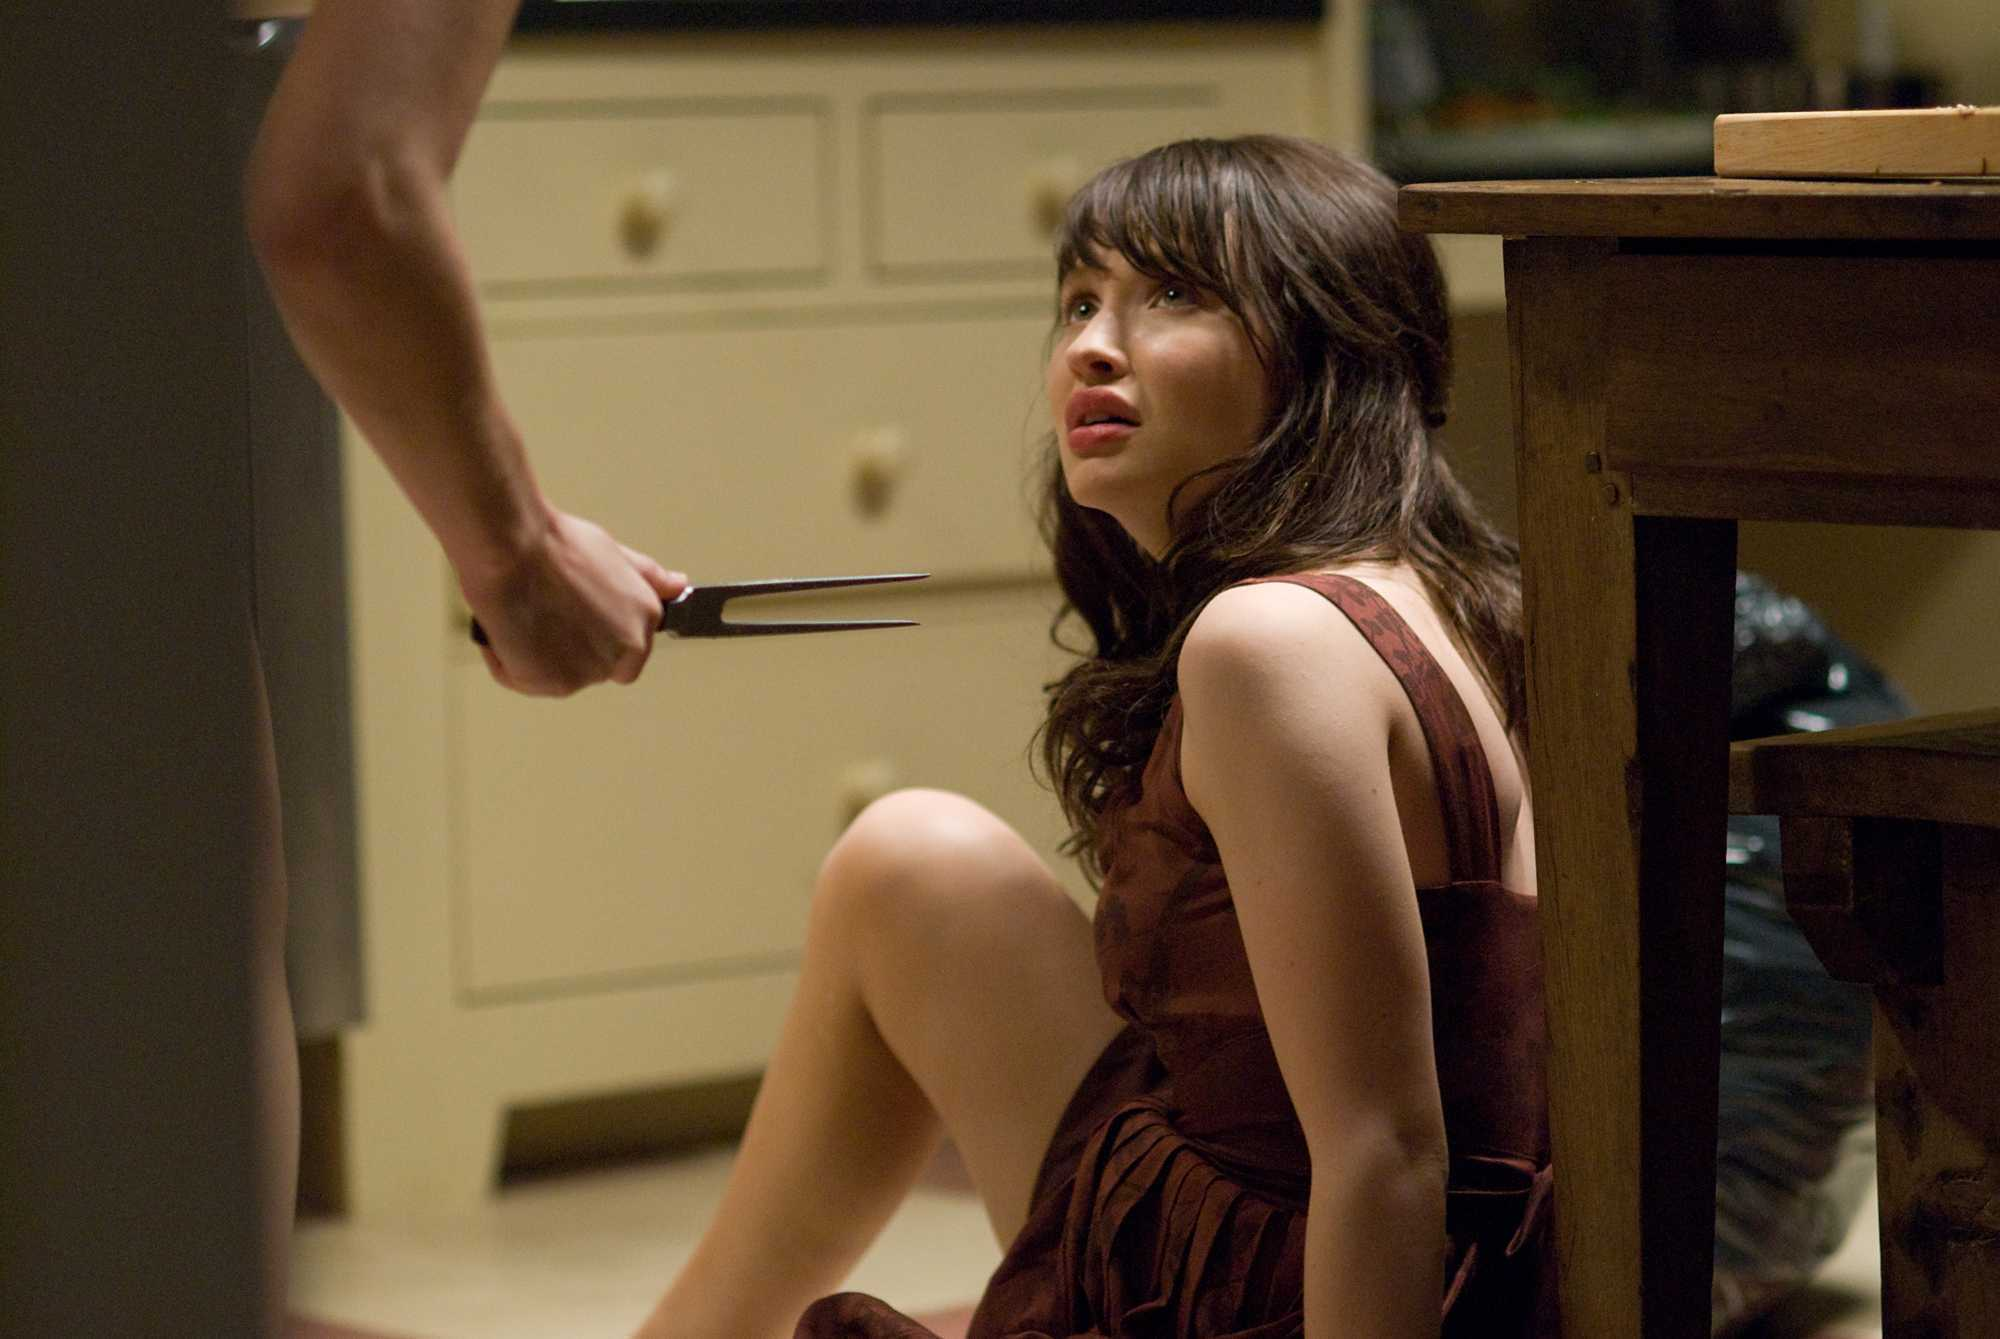 Erotic films 'the image' adult gallery